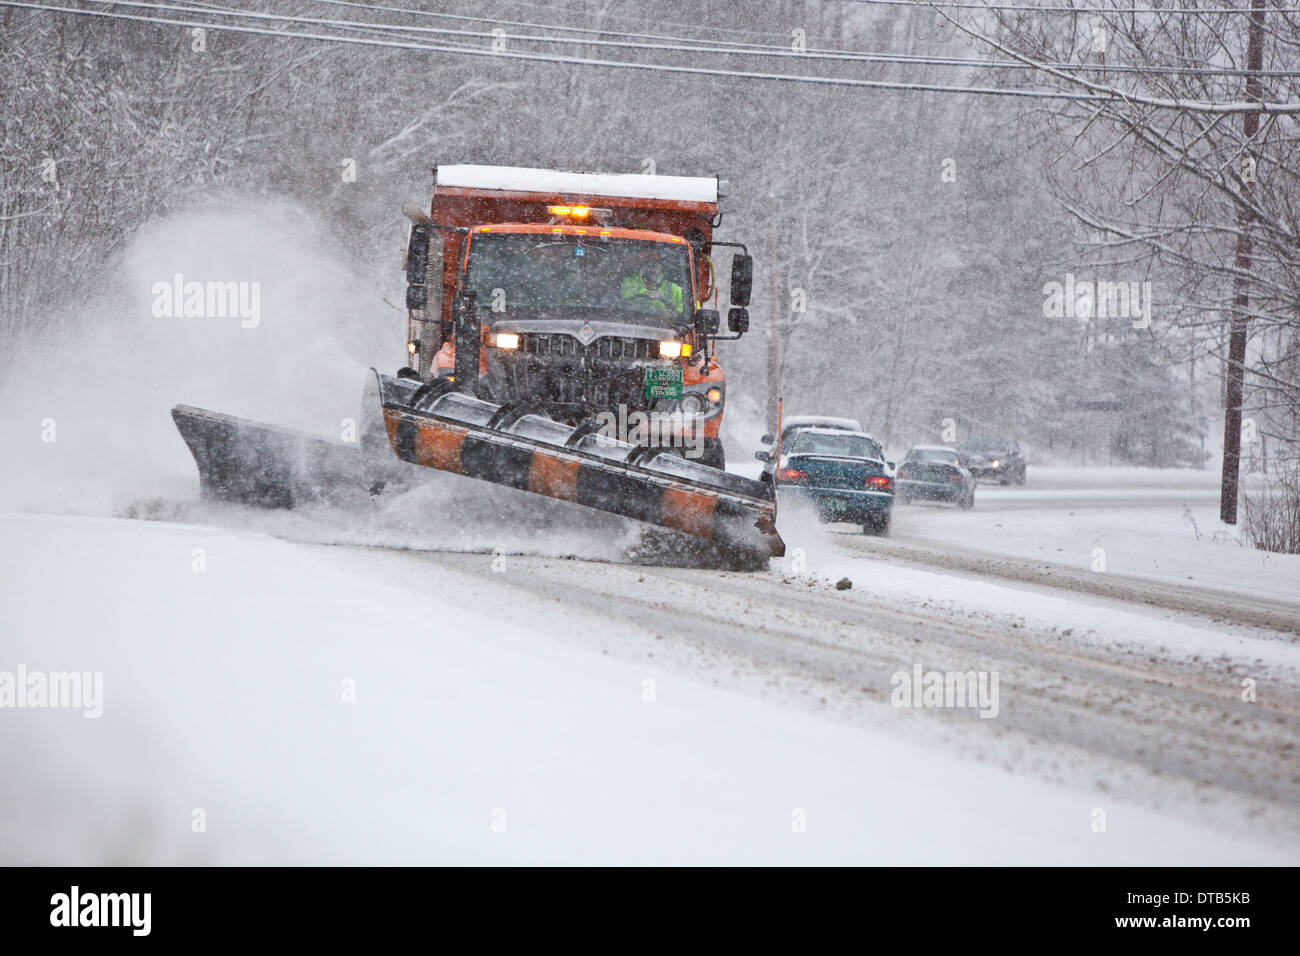 Snowplow on US route 7 in Vermont during a winter storm - Stock Image